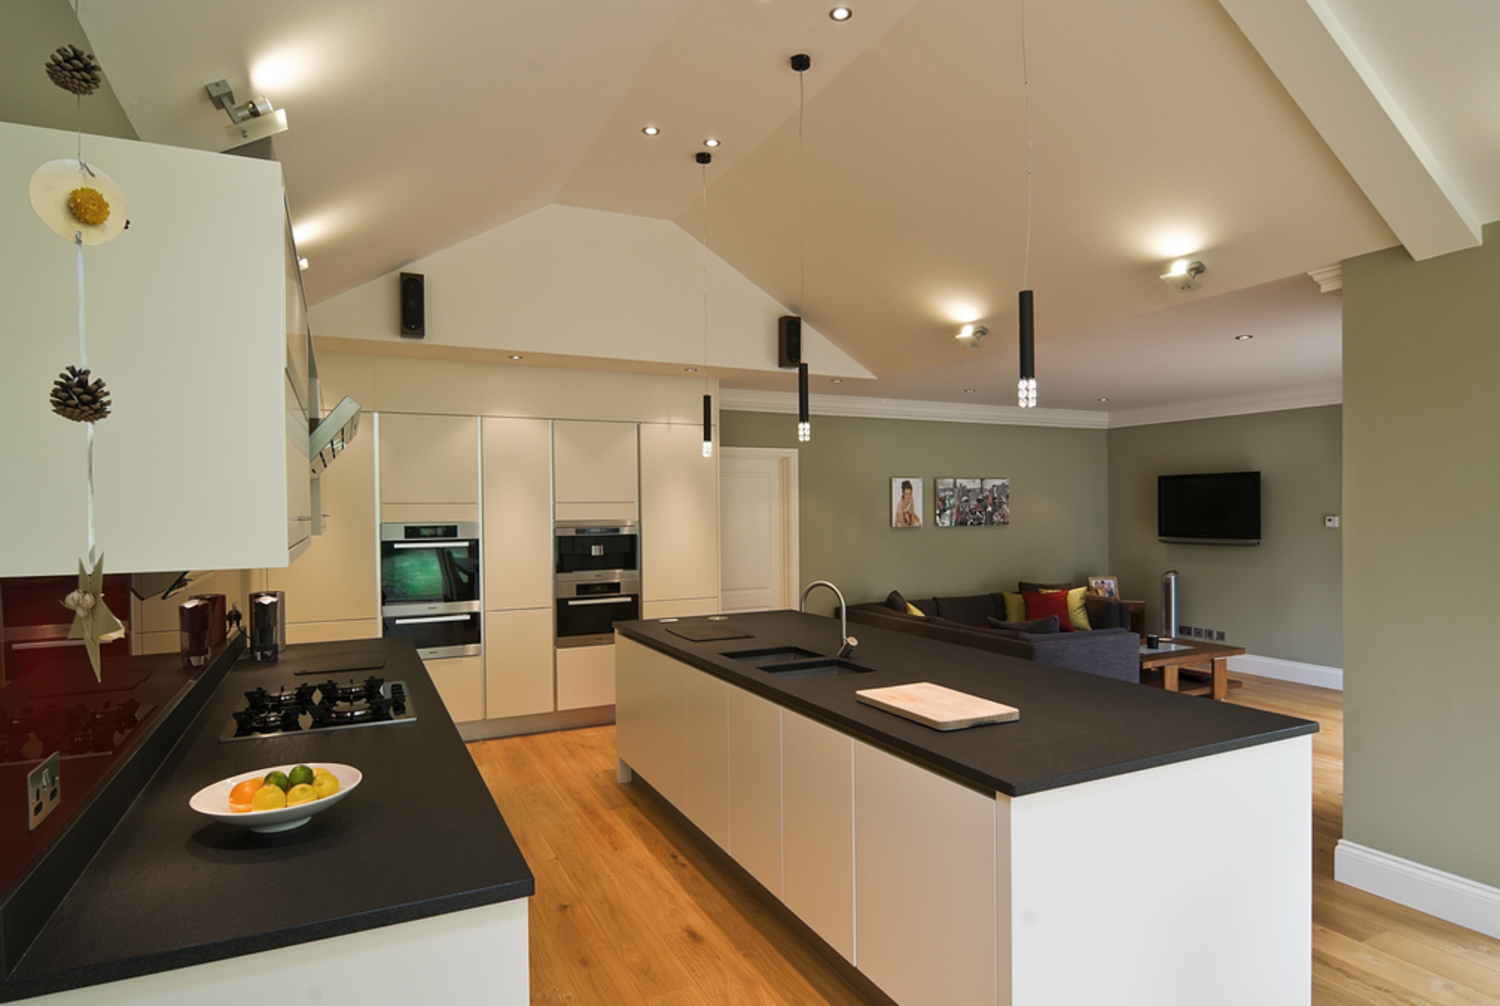 Kitchen view of a house extension by Harvey Norman Architects Cambridge